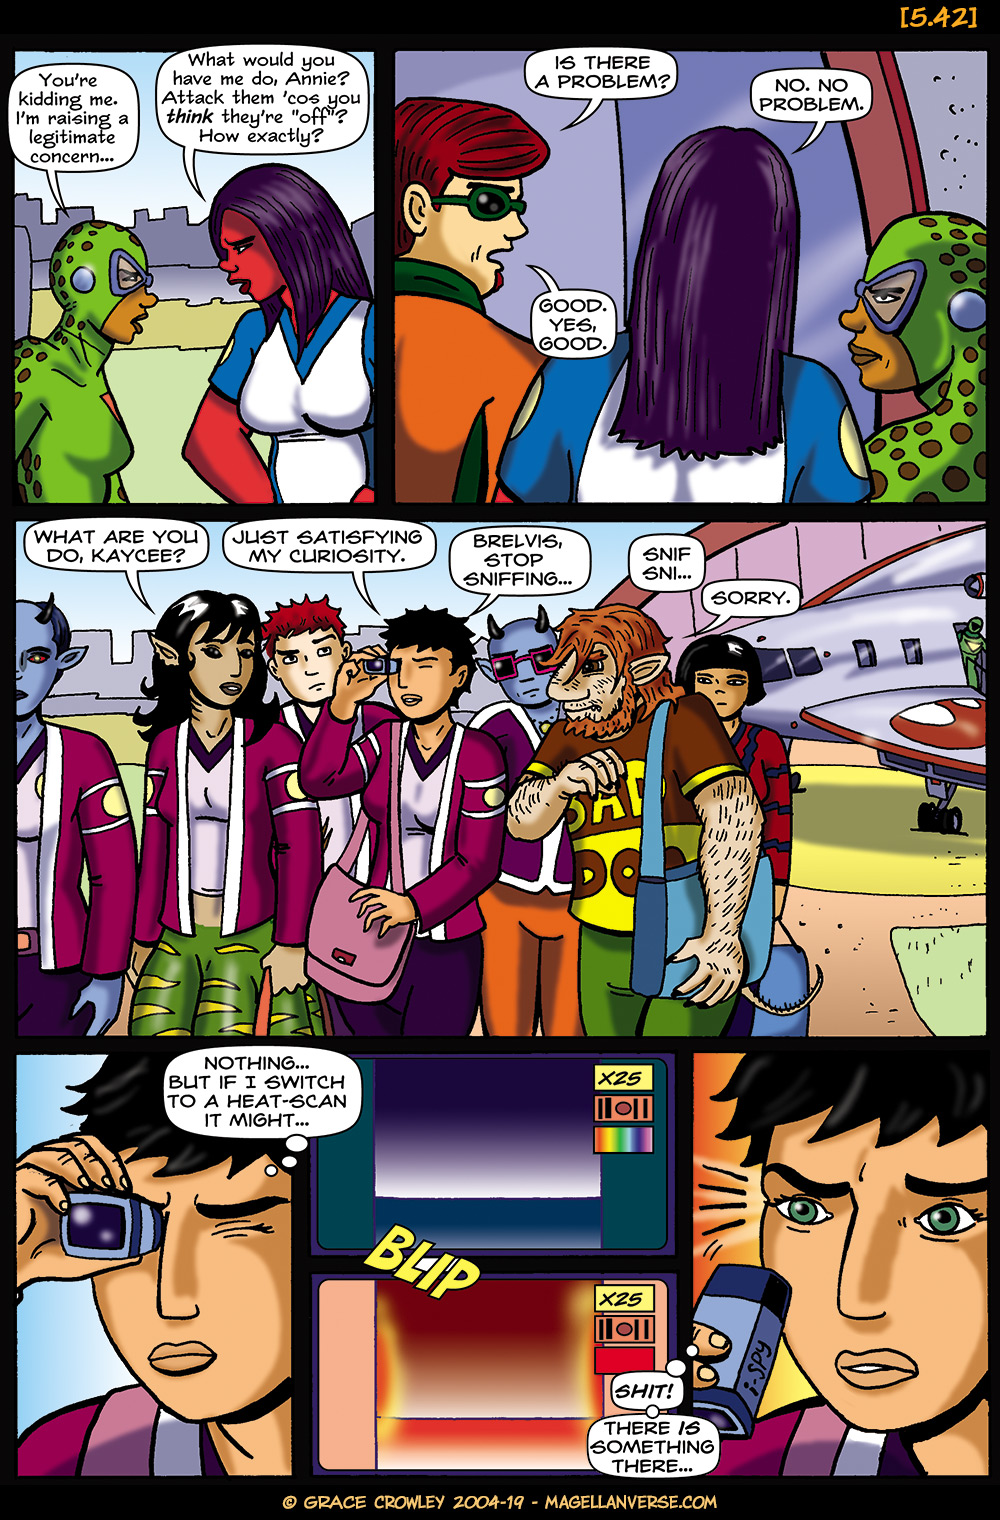 Page 5.42